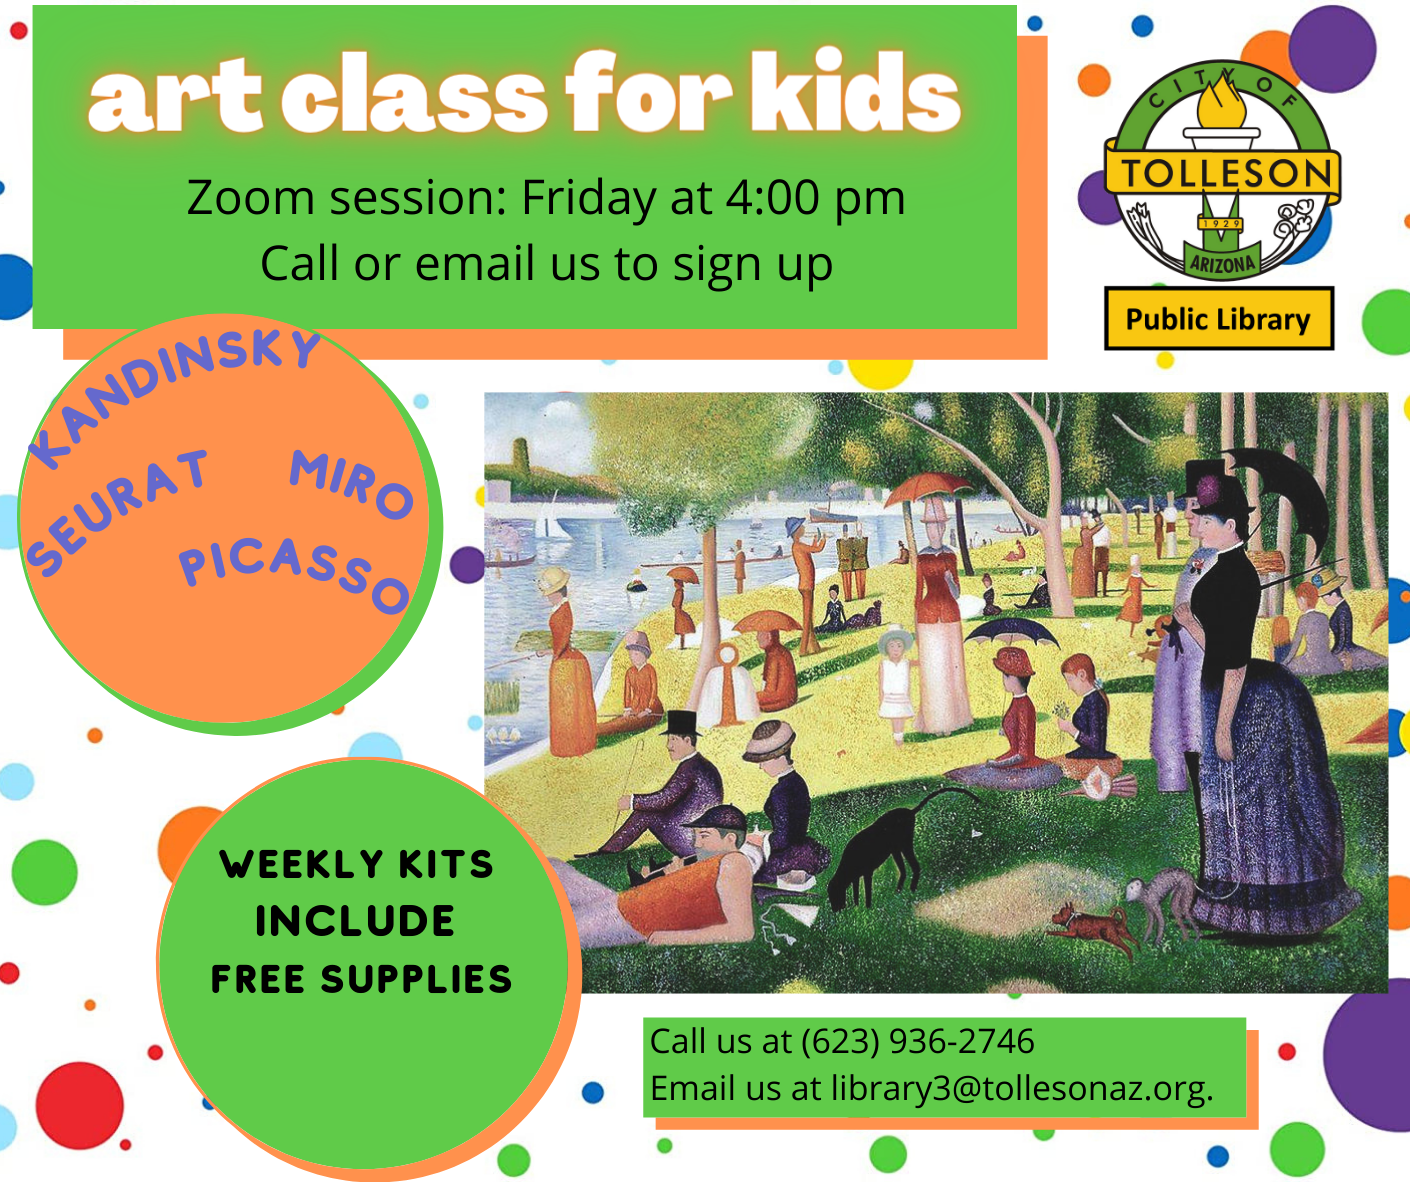 art class for kids